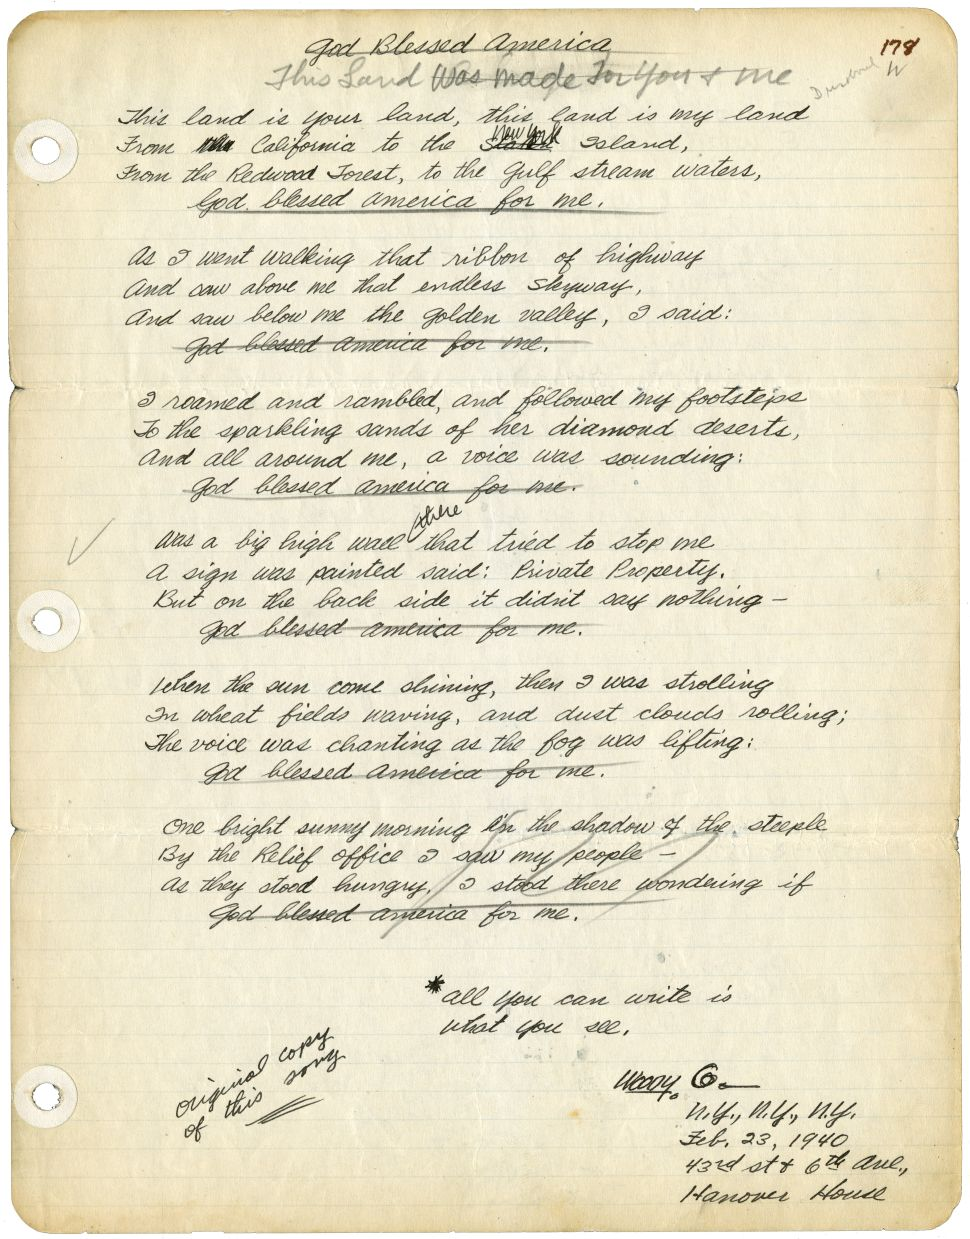 Woody Guthrie's song lyrics.